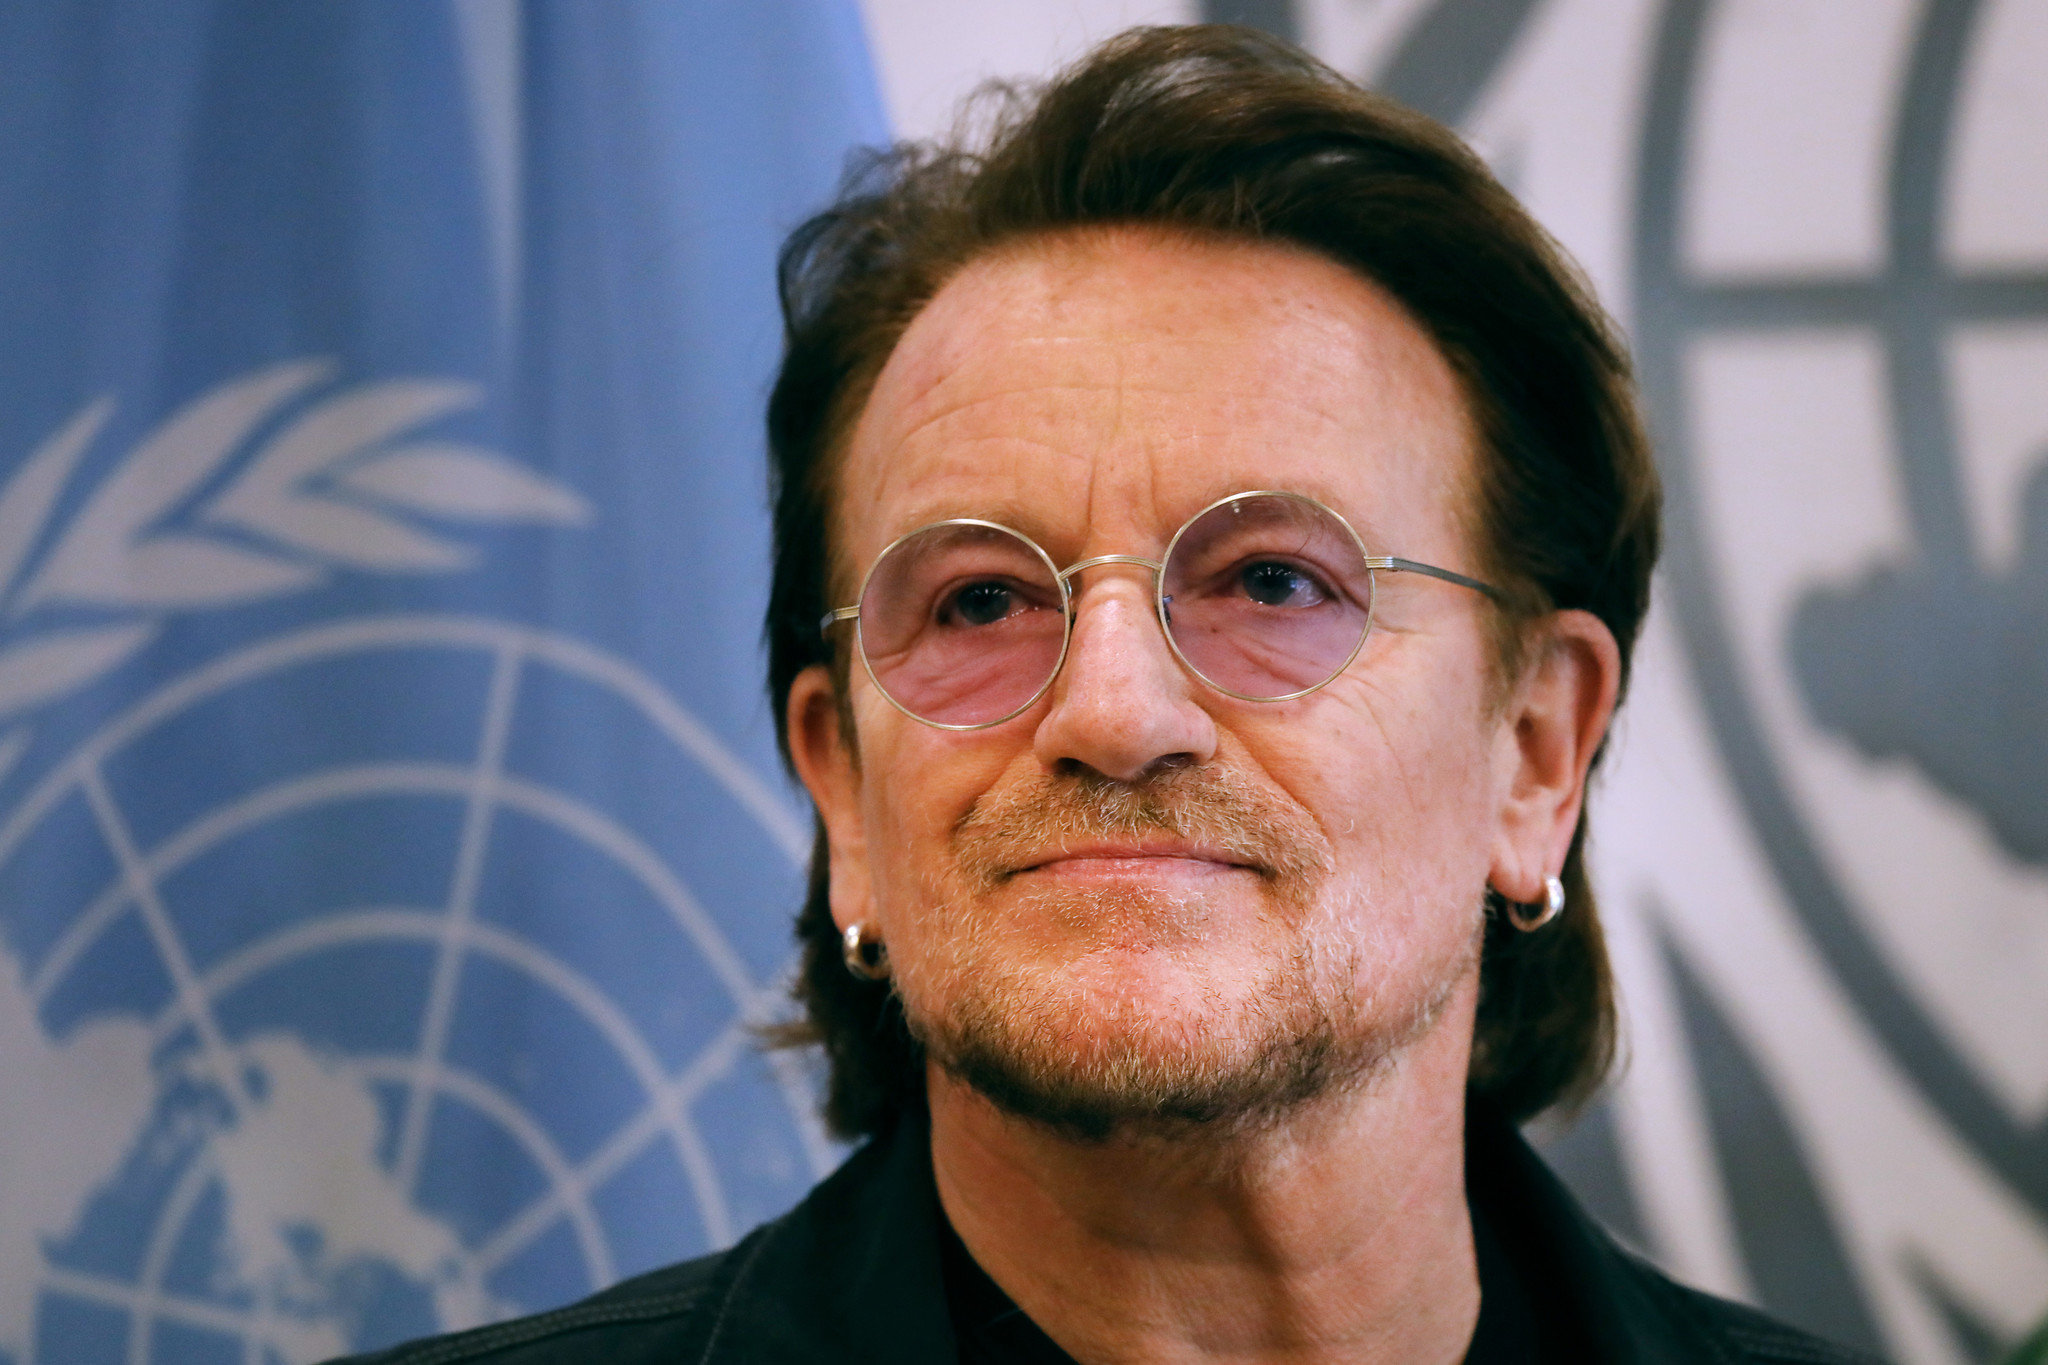 SEE IT: U2′s Bono releases emotional song for people of Italy during coronavirus crisis